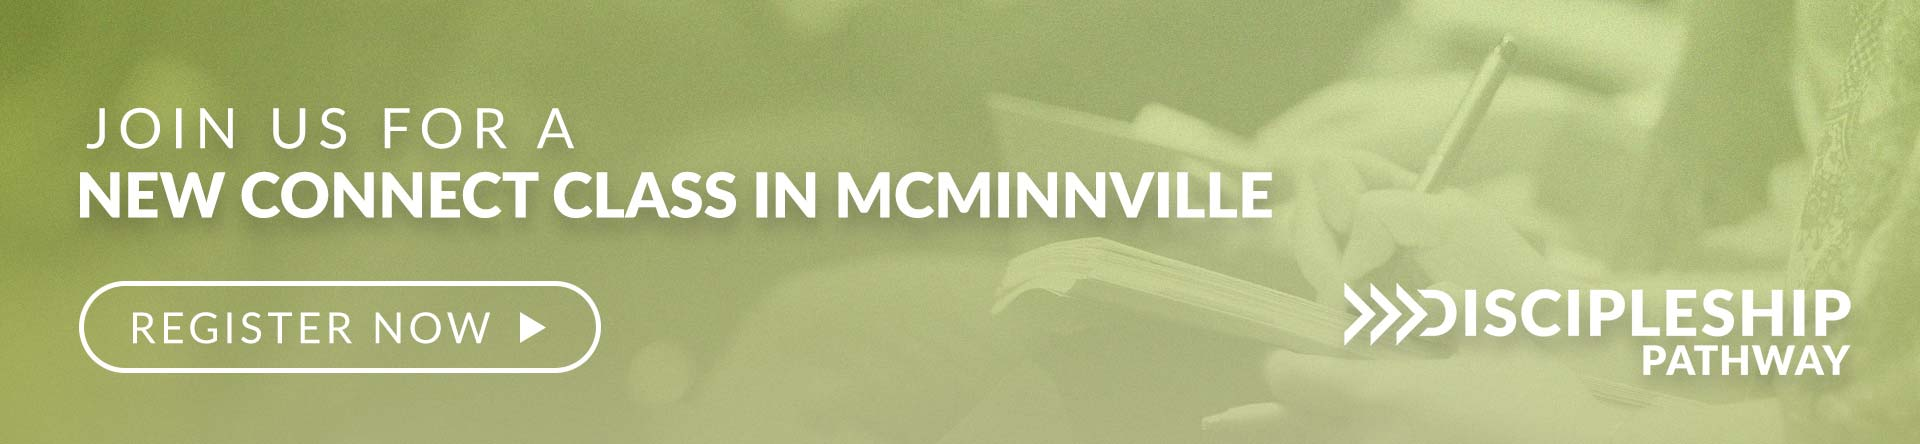 Connect Class - Mac McMinnville - Discipleship Pathway